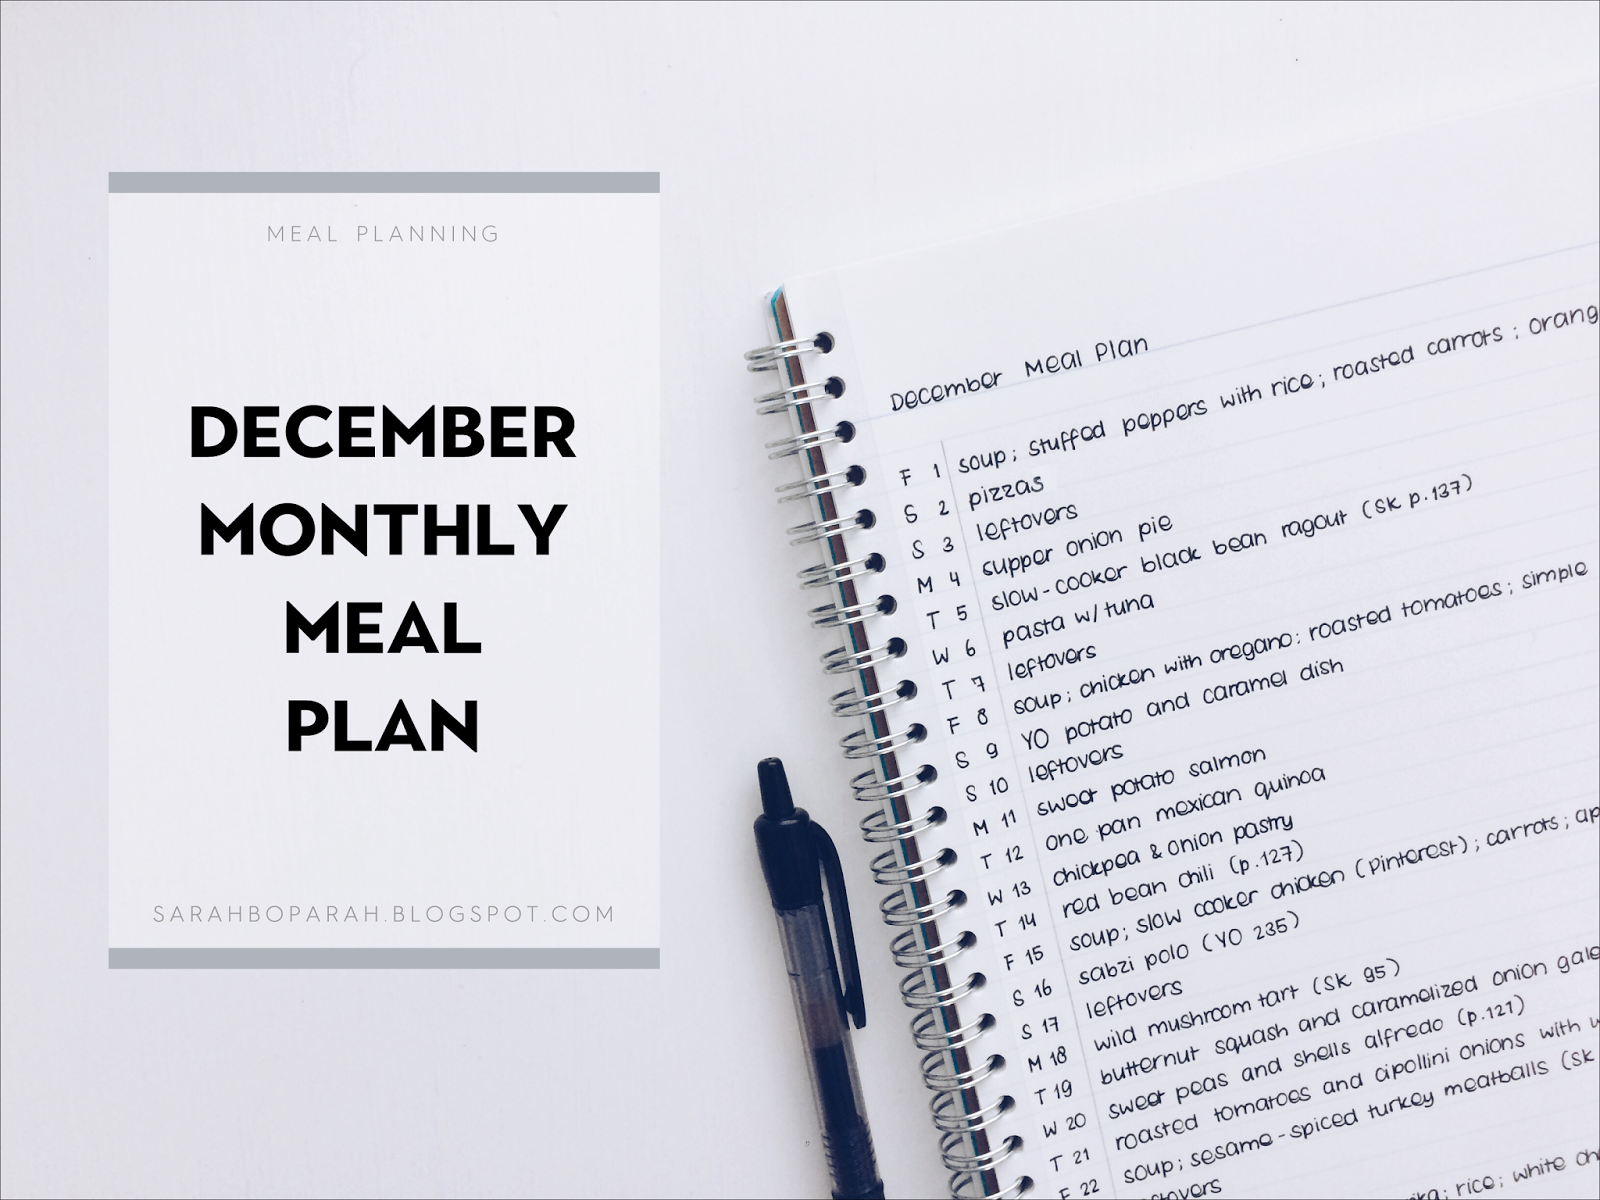 December Monthly Meal Plan from Sarahboparah.